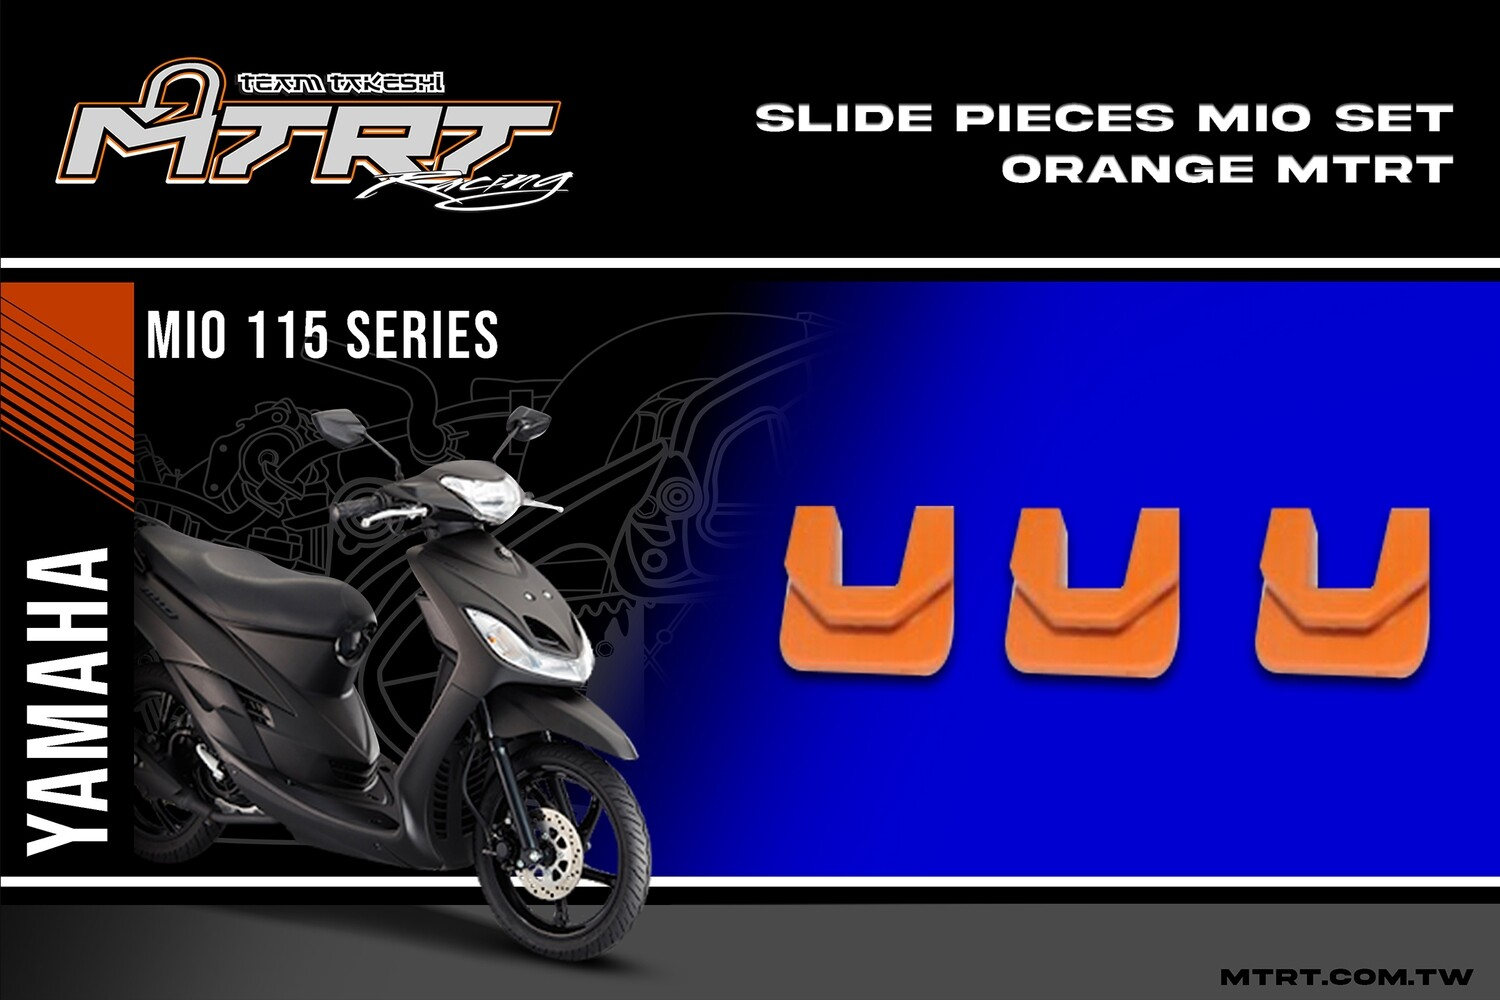 SLIDE PIECES  MIO Set  ORANGE MTRT